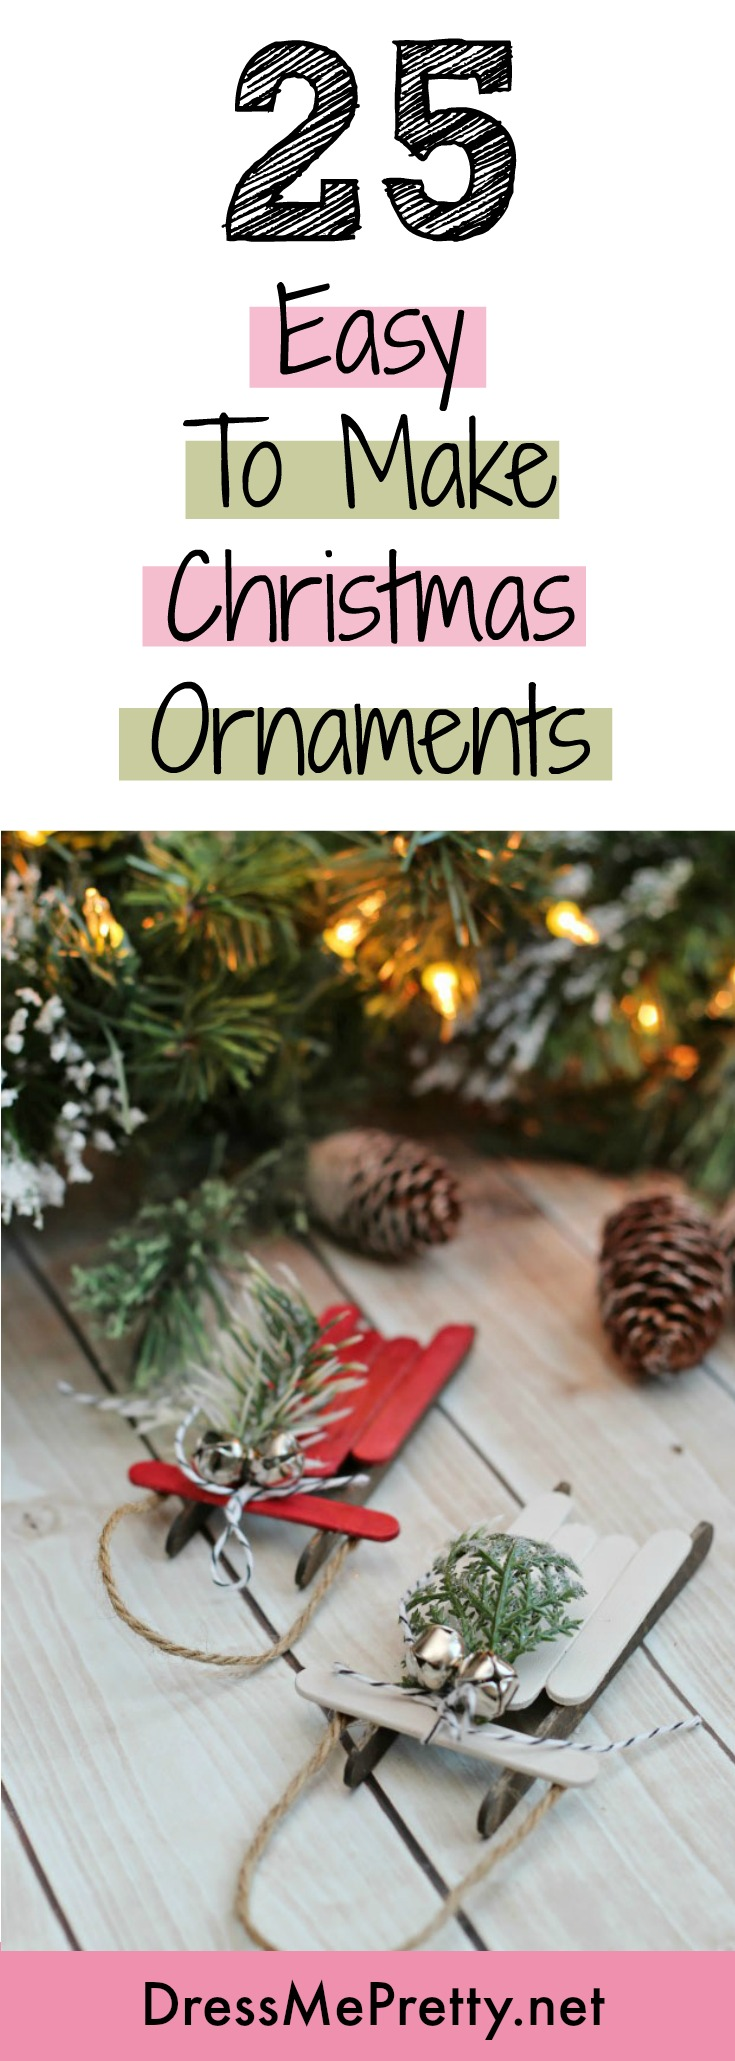 Music Themed Christmas Ornaments.25 Easy To Make Christmas Ornaments Dress Me Pretty